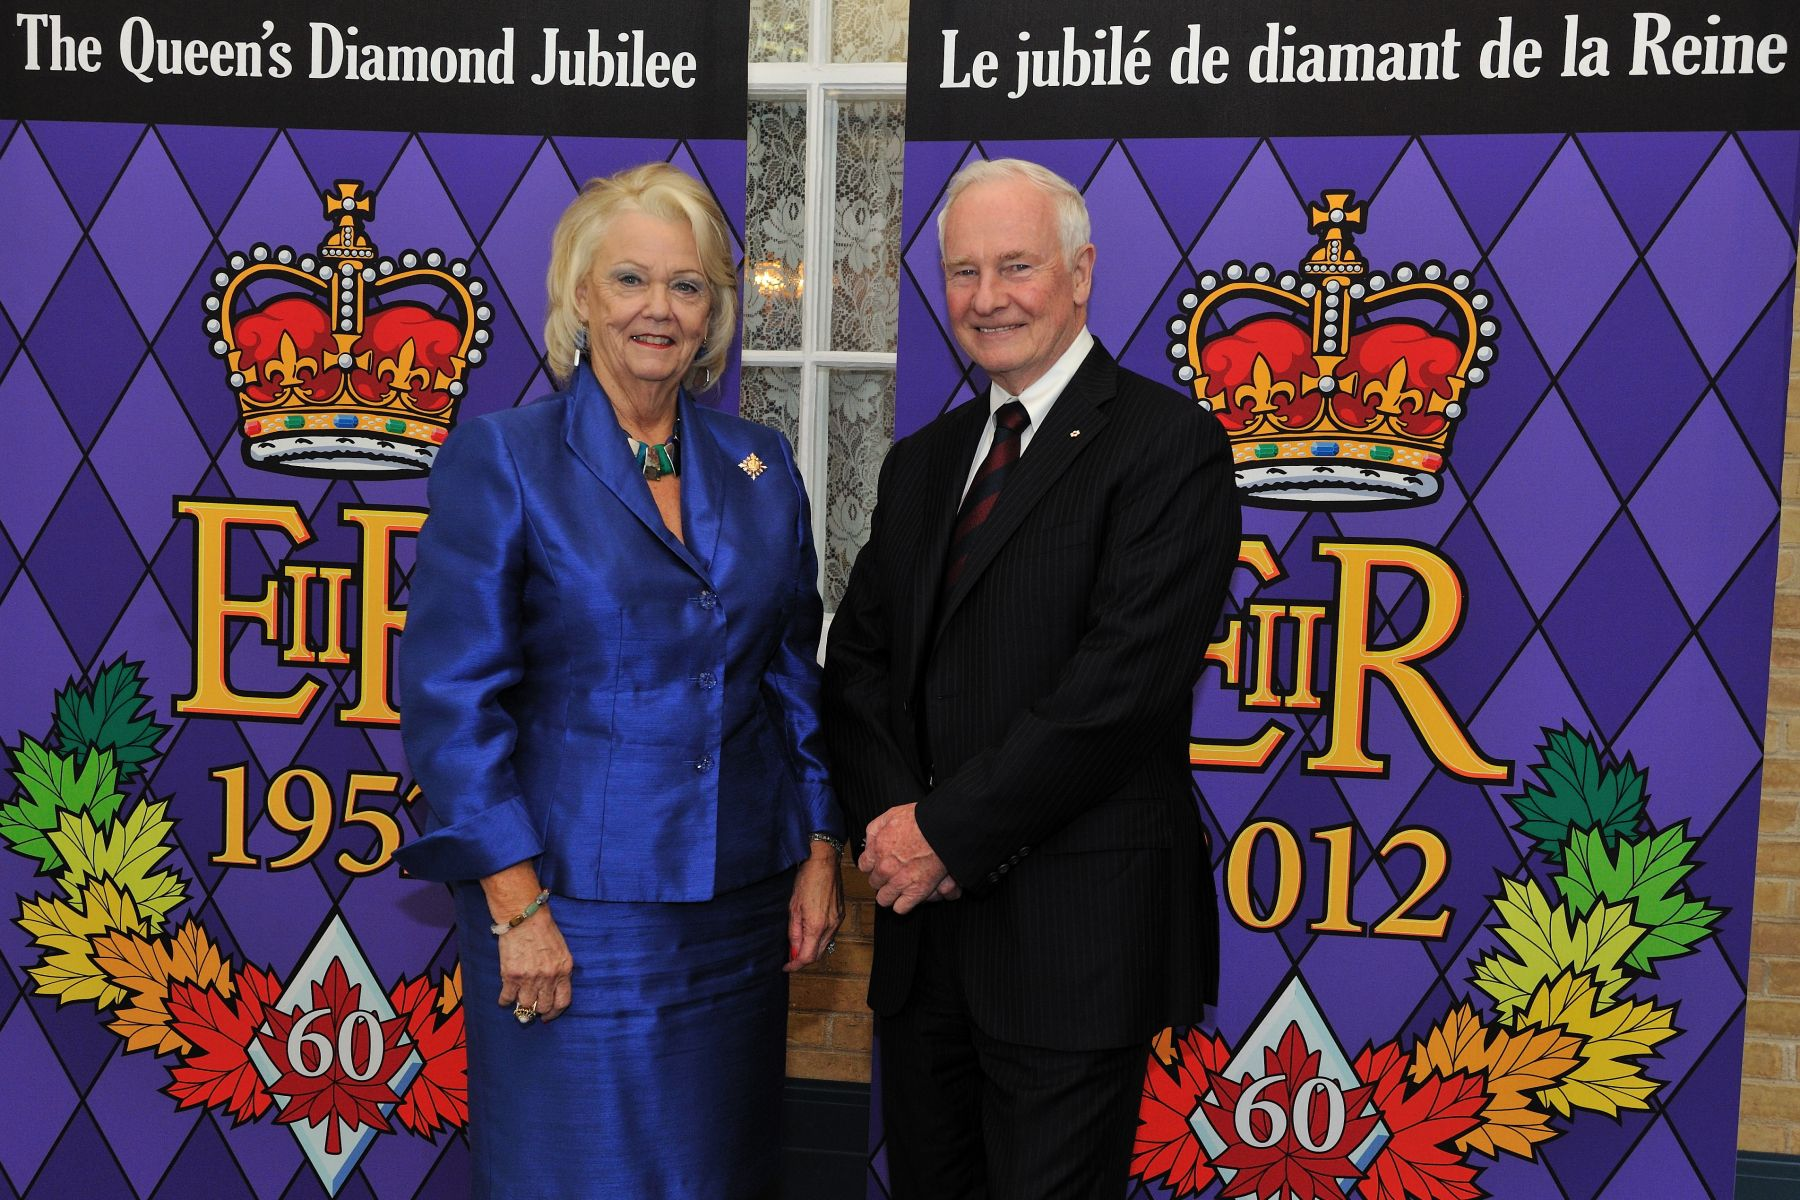 While in Regina to bid farewell to Their Royal Highnesses, the Governor General had the chance to meet with, fort the first time, Her Honour the Honourable Vaughn Solomon Schofield, Lieutenant-Governor of Saskatchewan.